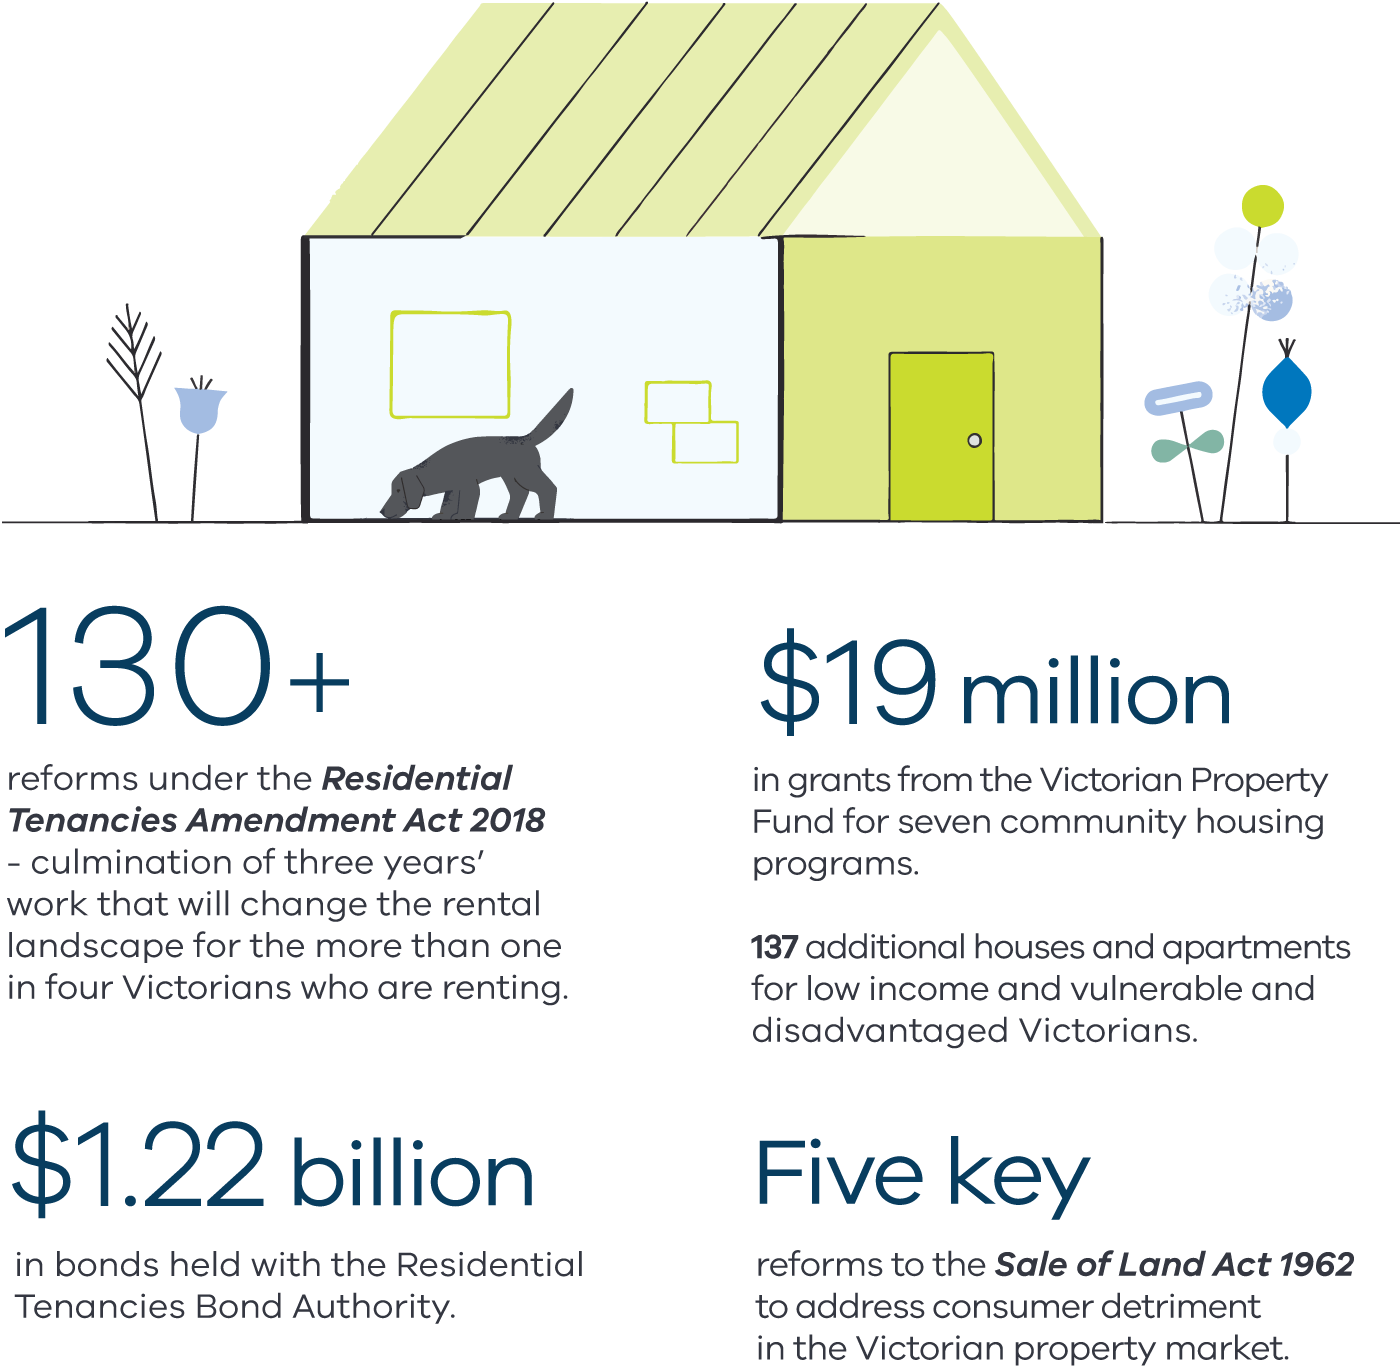 Illustration of a house surrounded by flowers and a dog at the front. Text reads: 130+ reforms under the Residential Tenancies Amendment Act 2018 - culmination of three years' work that will change the rental landscape for the more than one in four Victorians who are renting. $19 million in grants from the Victorian Property Fund for seven community housing programs. 137 additional houses and apartments for low income and vulnerable and disadvantaged Victorians. $1.22 billion in bonds held with the Residential Tenancies Bond Authority. Five key reforms to the Sale of Land Act 1962 to address consumer detriment in the Victorian property market.